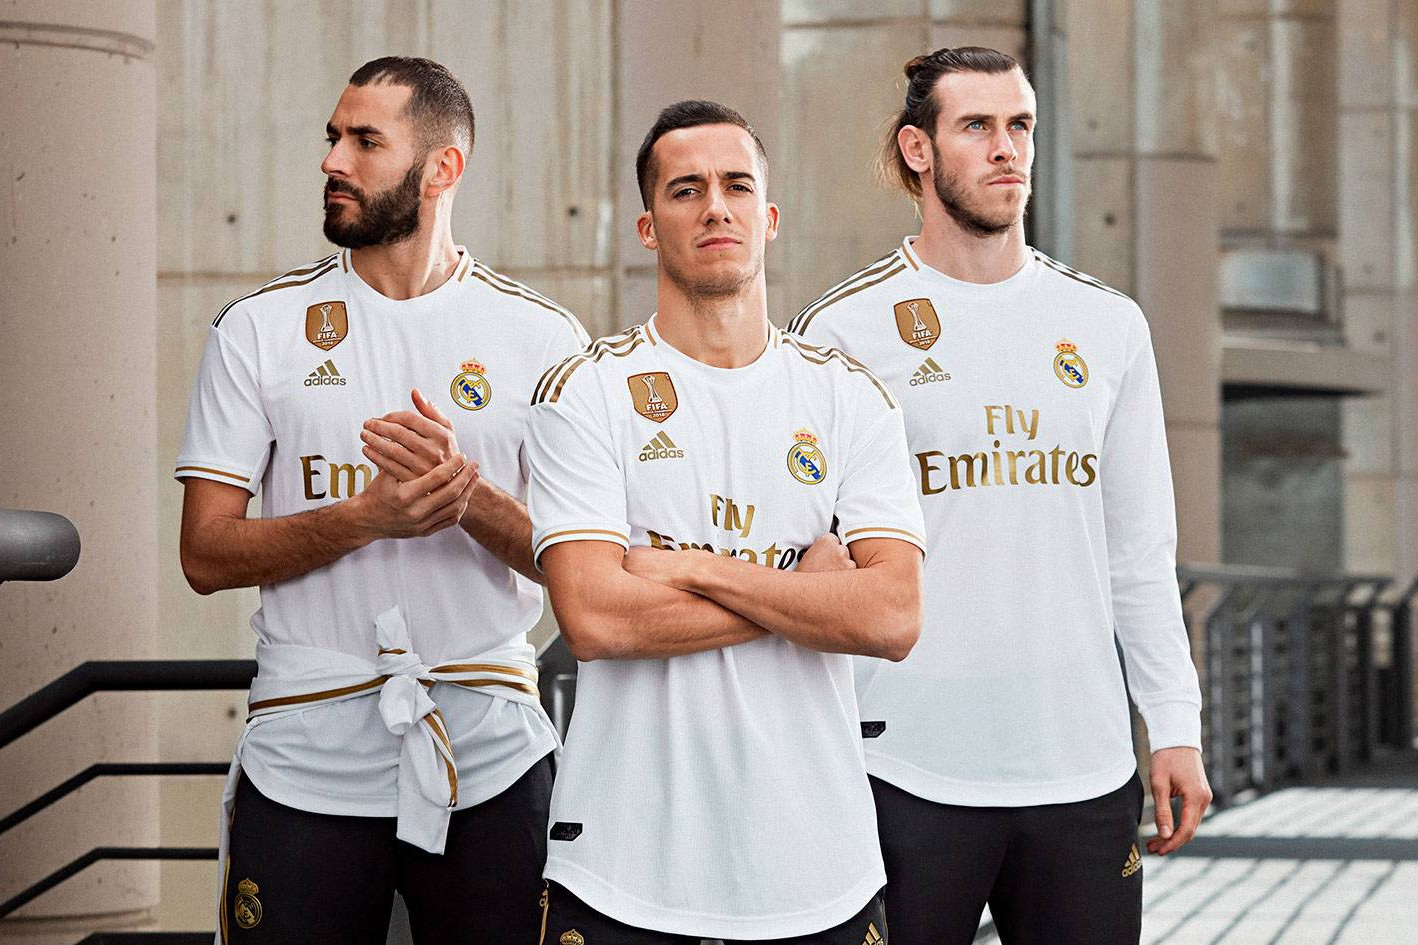 The 10 Best Football Kits of the 2019/20 Season soccer Leicester City Premier League Paris Saint-Germain PSG Real Madrid Champions League Liverpool  nike adidas new balance Arsenal Bayern Munich AS Roma Chelsea Inter Milan